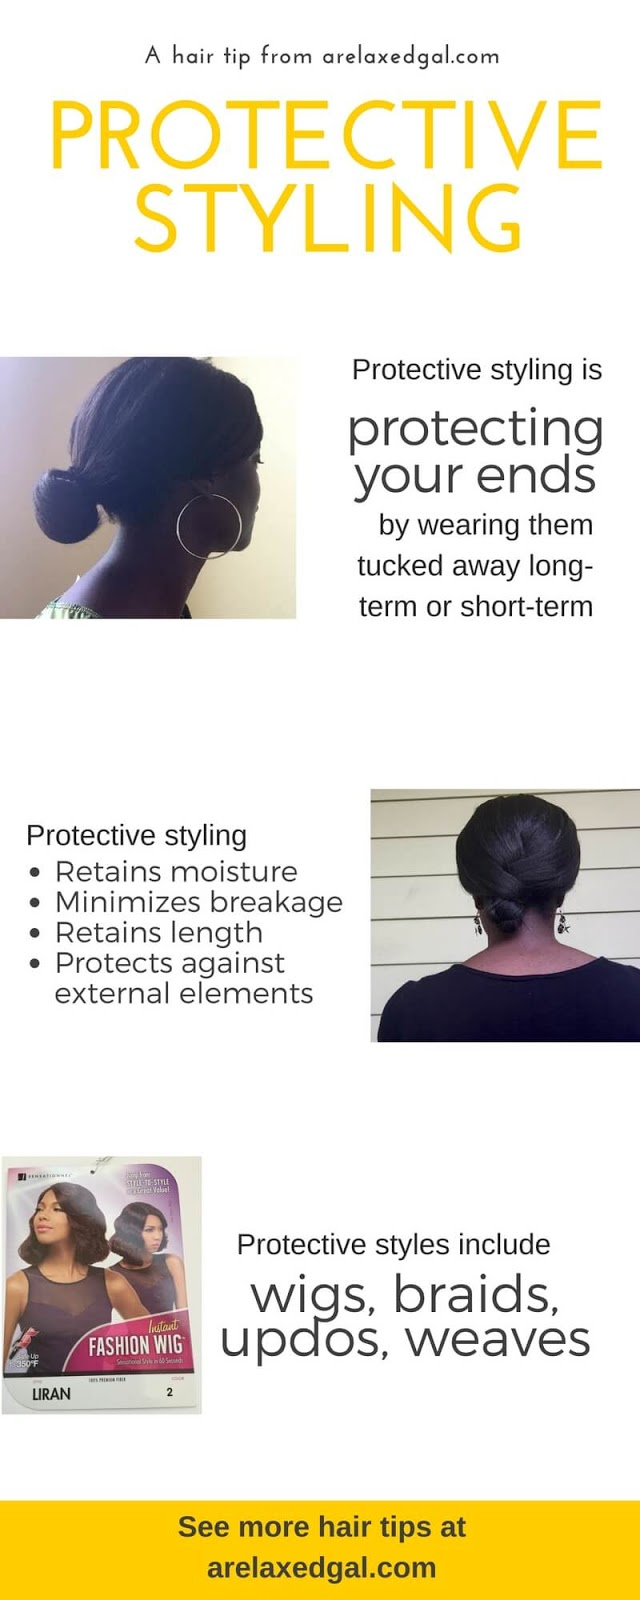 See the benefits of protective styling and what a protective style is. | arelaxedgal.com